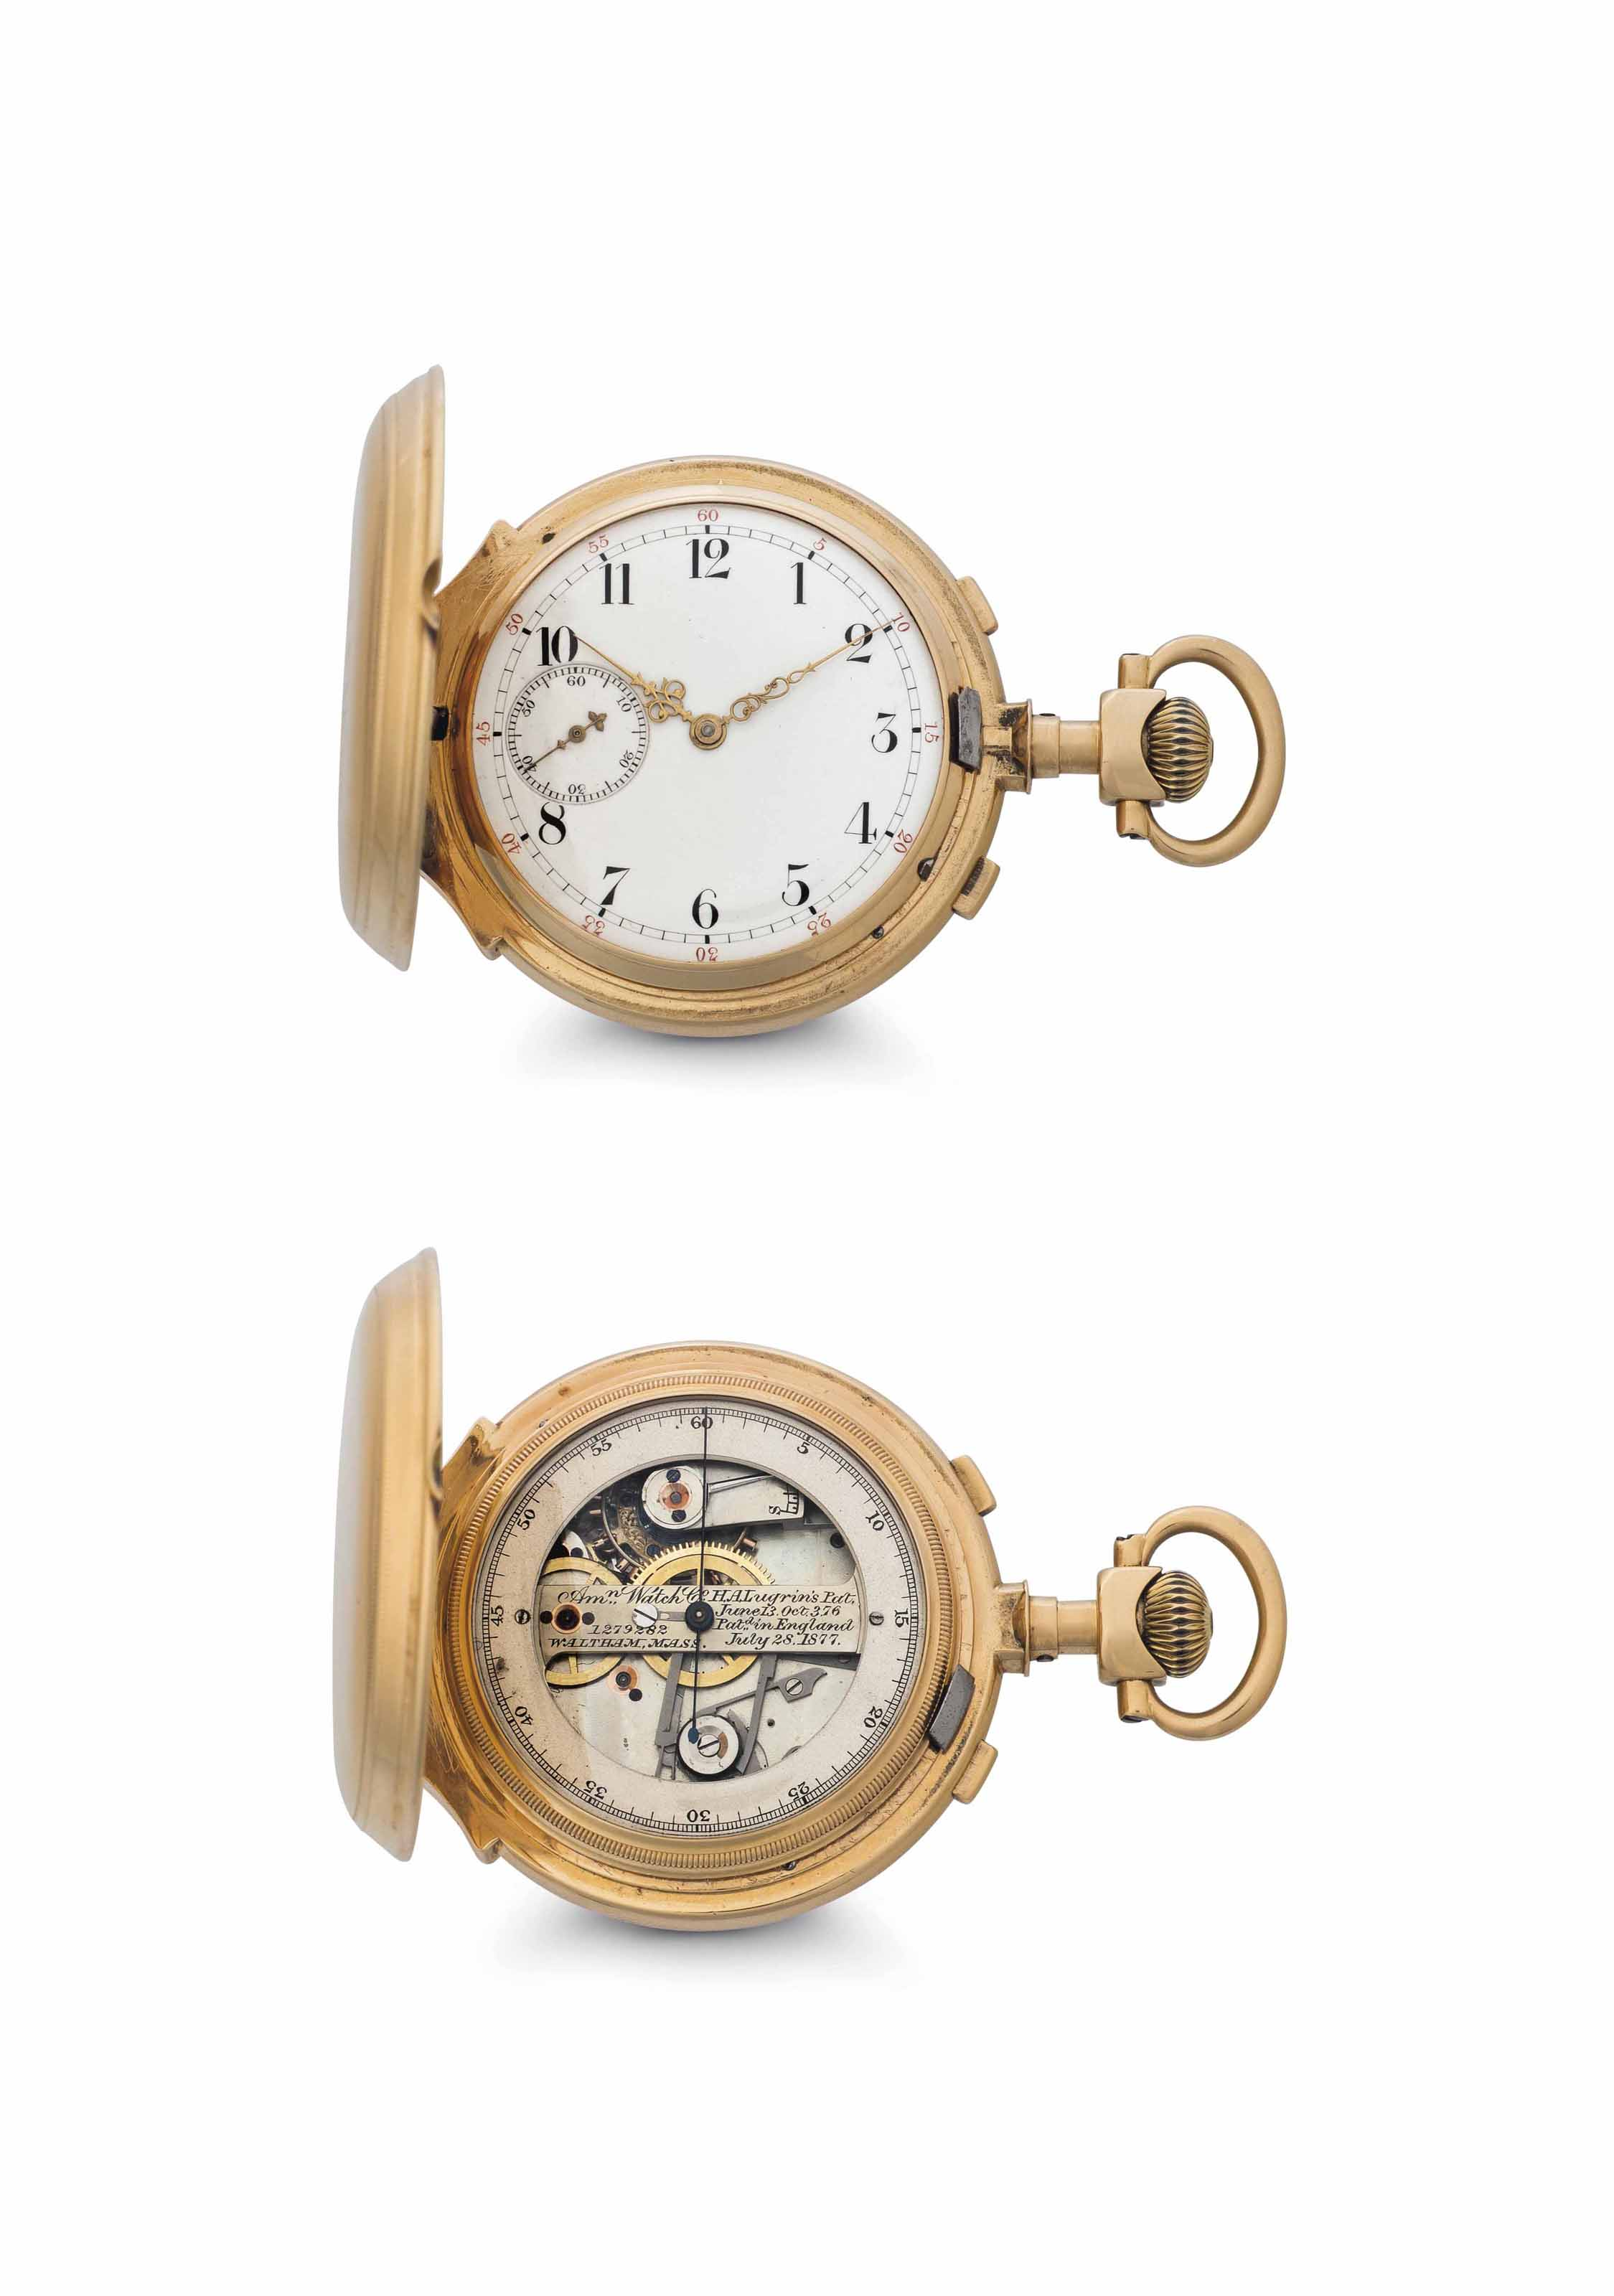 American Watch. A Rare 18k Gold Hunter Case Double Dial Keyless Lever Chronograph Watch